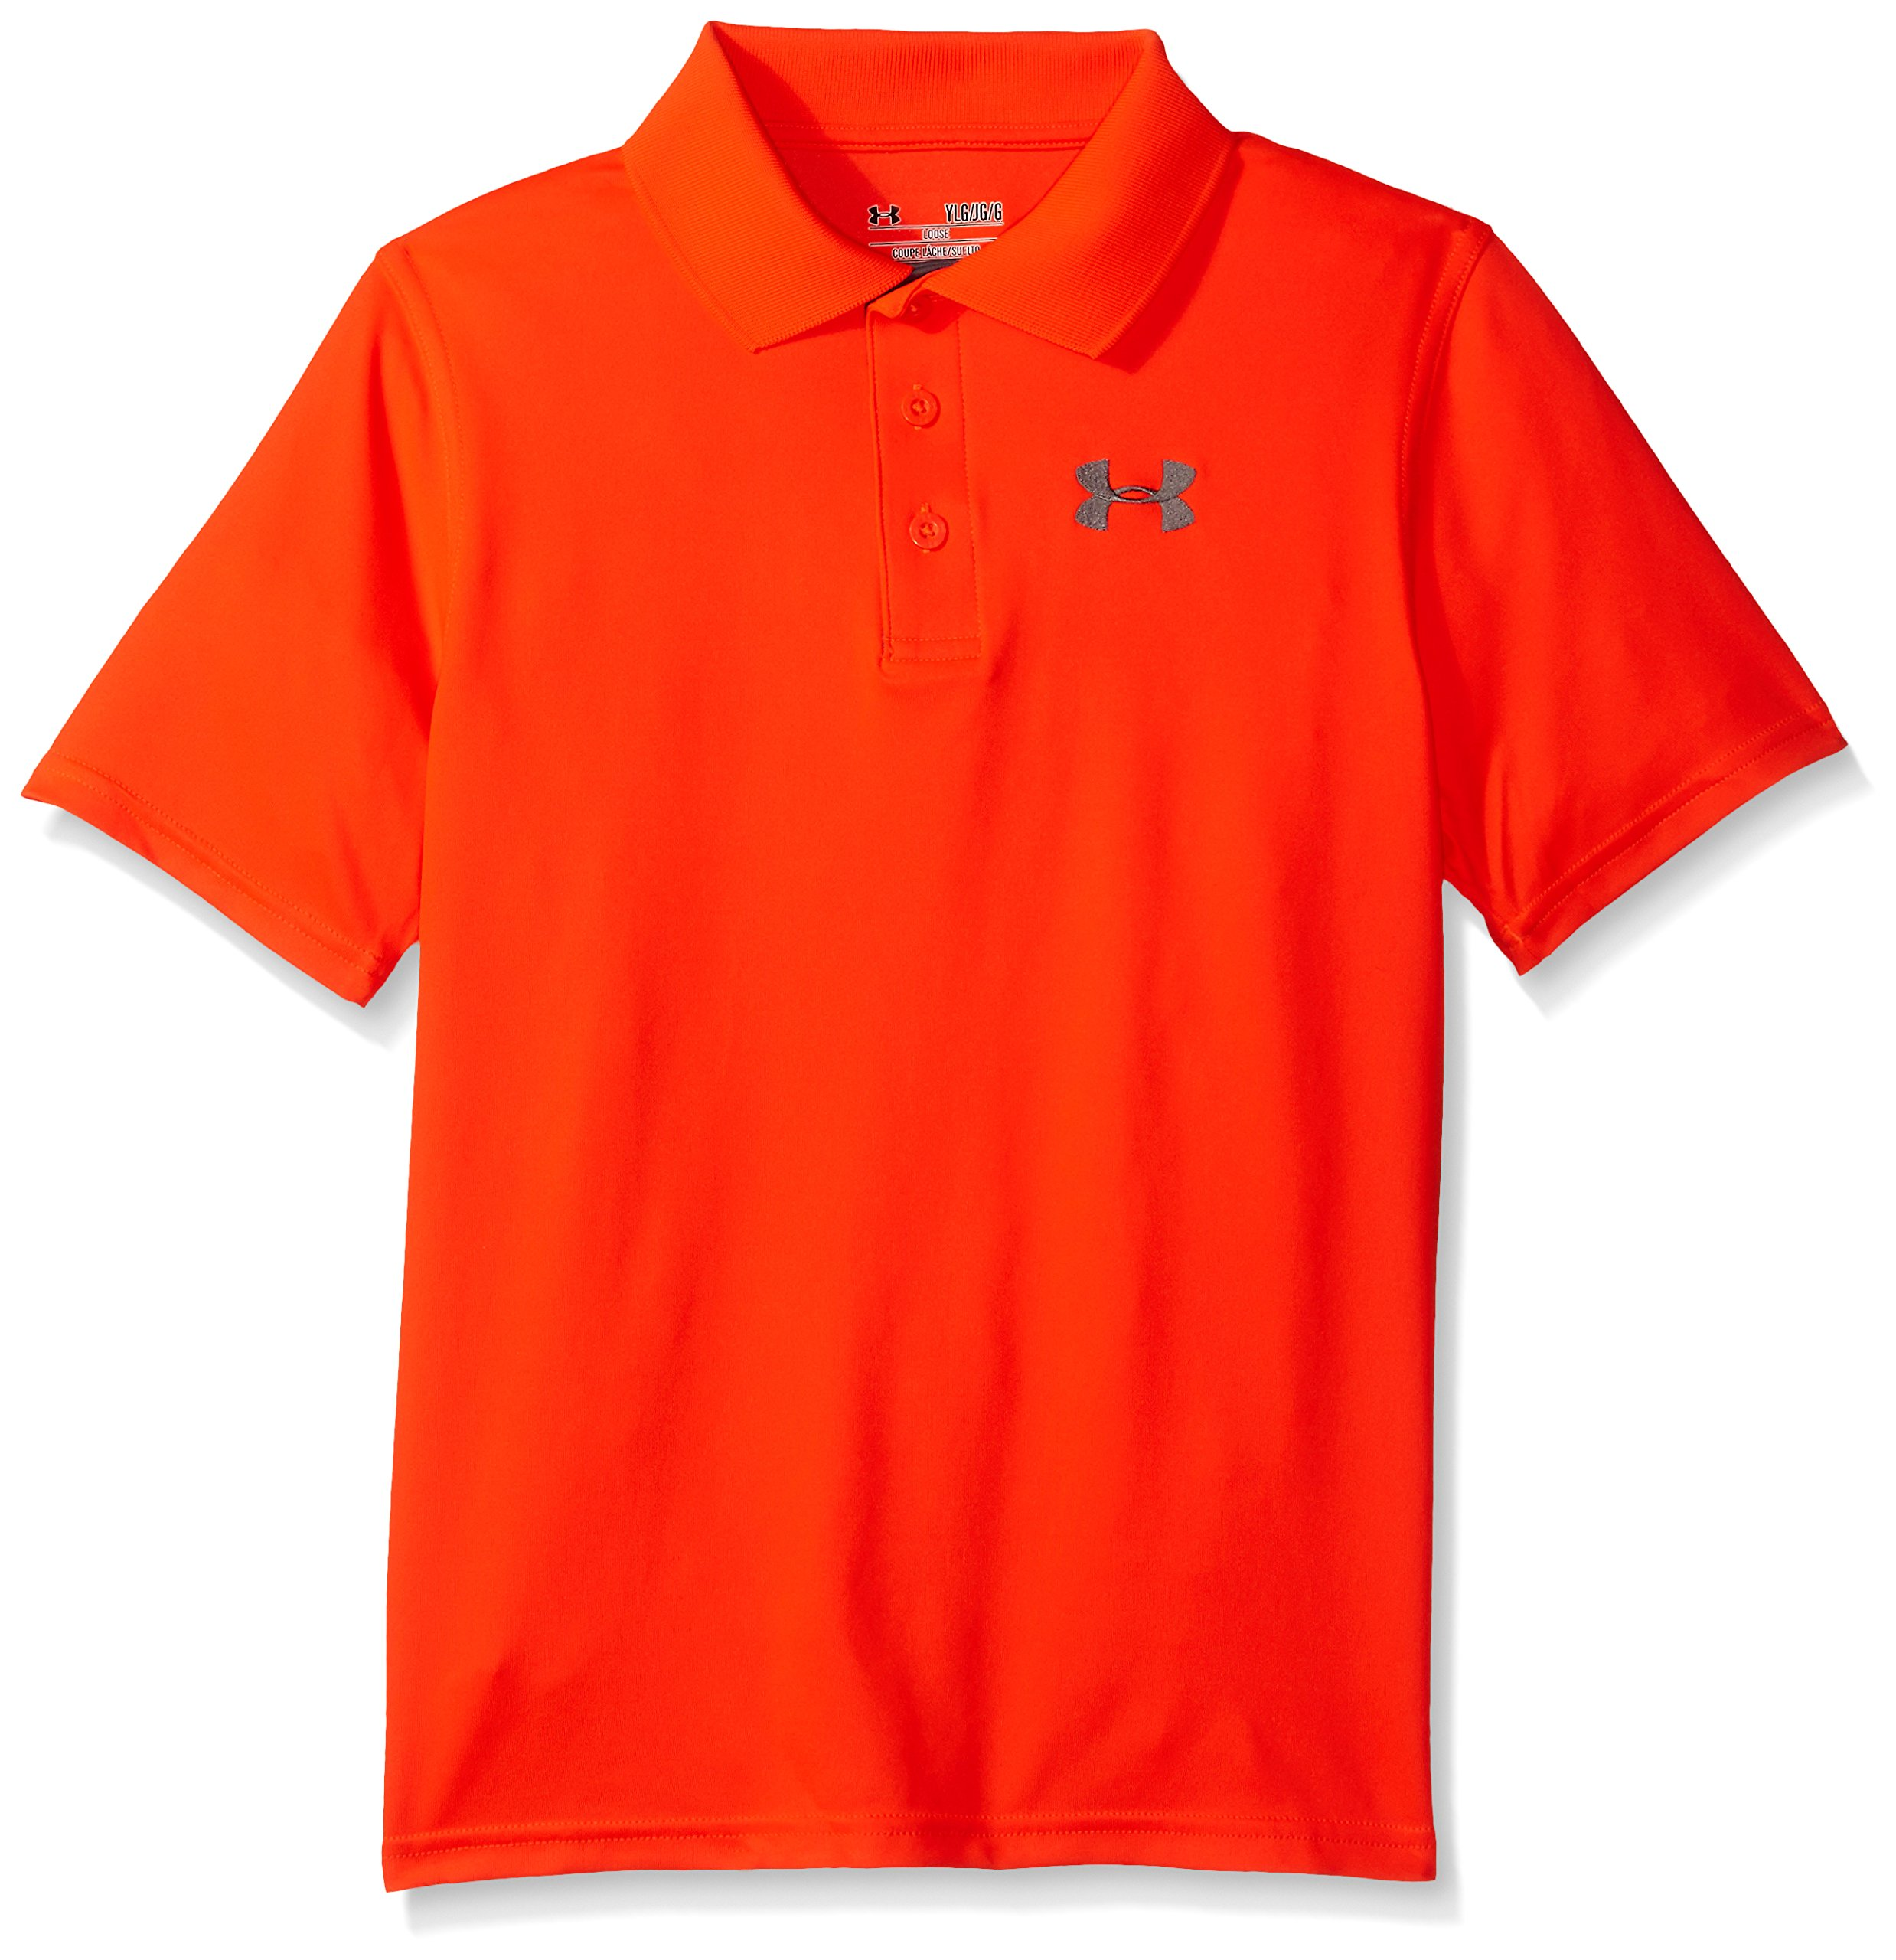 Under Armour Boys' Match Play Polo, Bolt Orange /Graphite, Youth X-Large